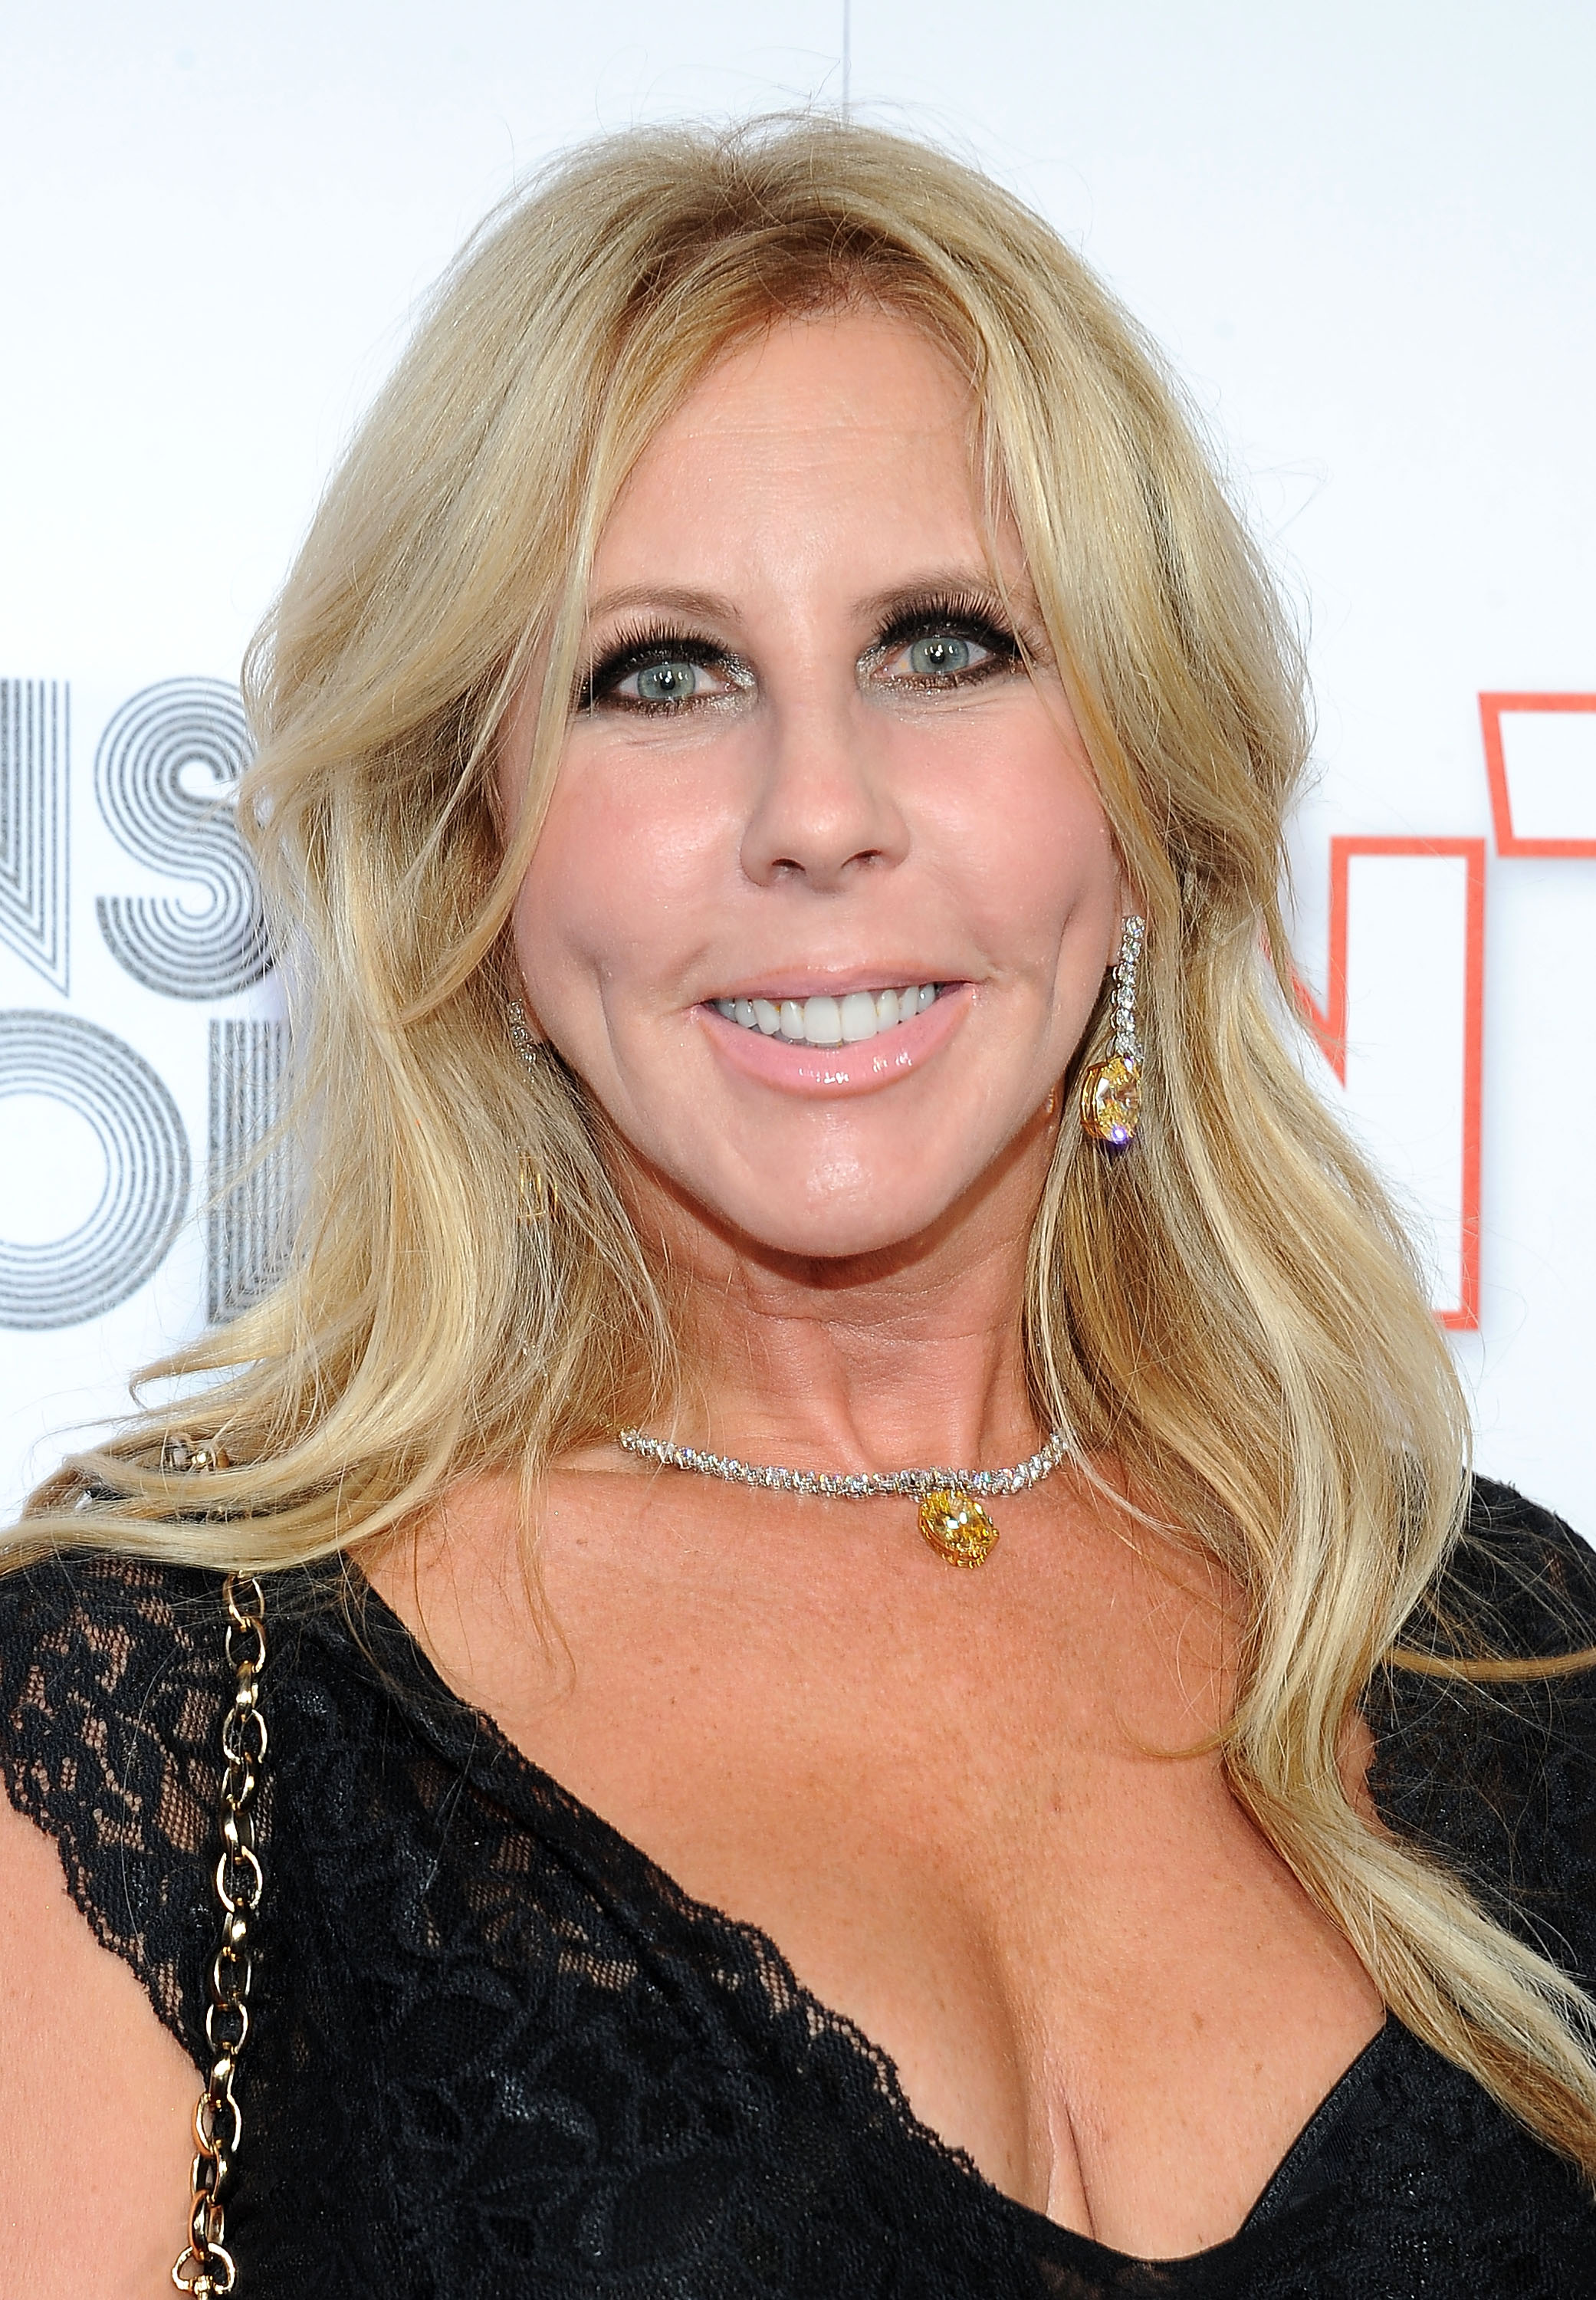 Vicki Gunvalson attends In Touch Weekly's 5th Annual 2012 Icons + Idols at Chateau Marmont on September 6, 2012 in Los Angeles, California.